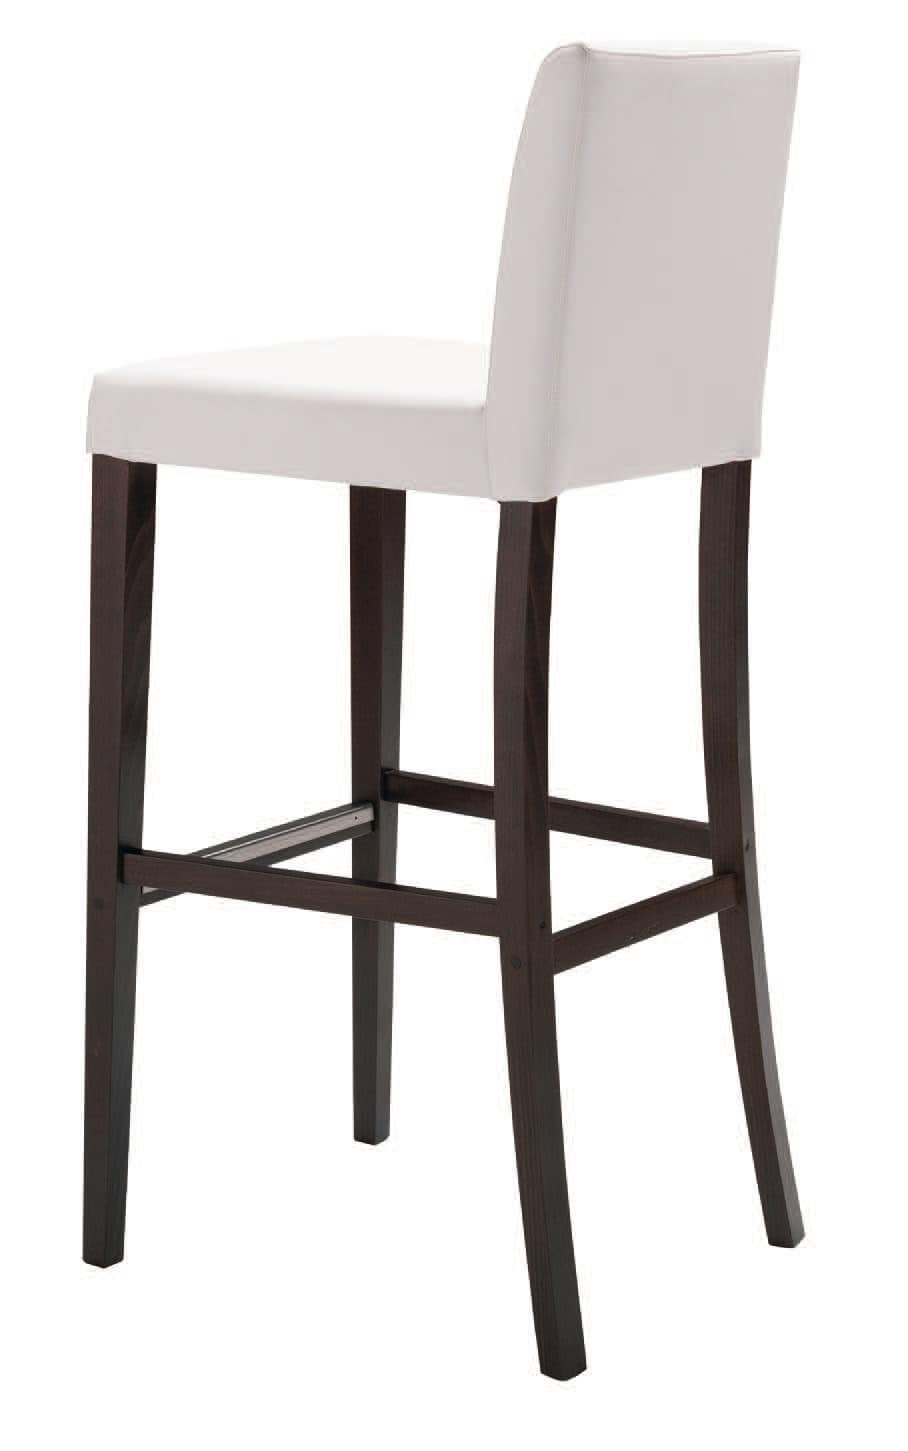 SG 47 / OG, Stool in painted wood, with backrest, for bars